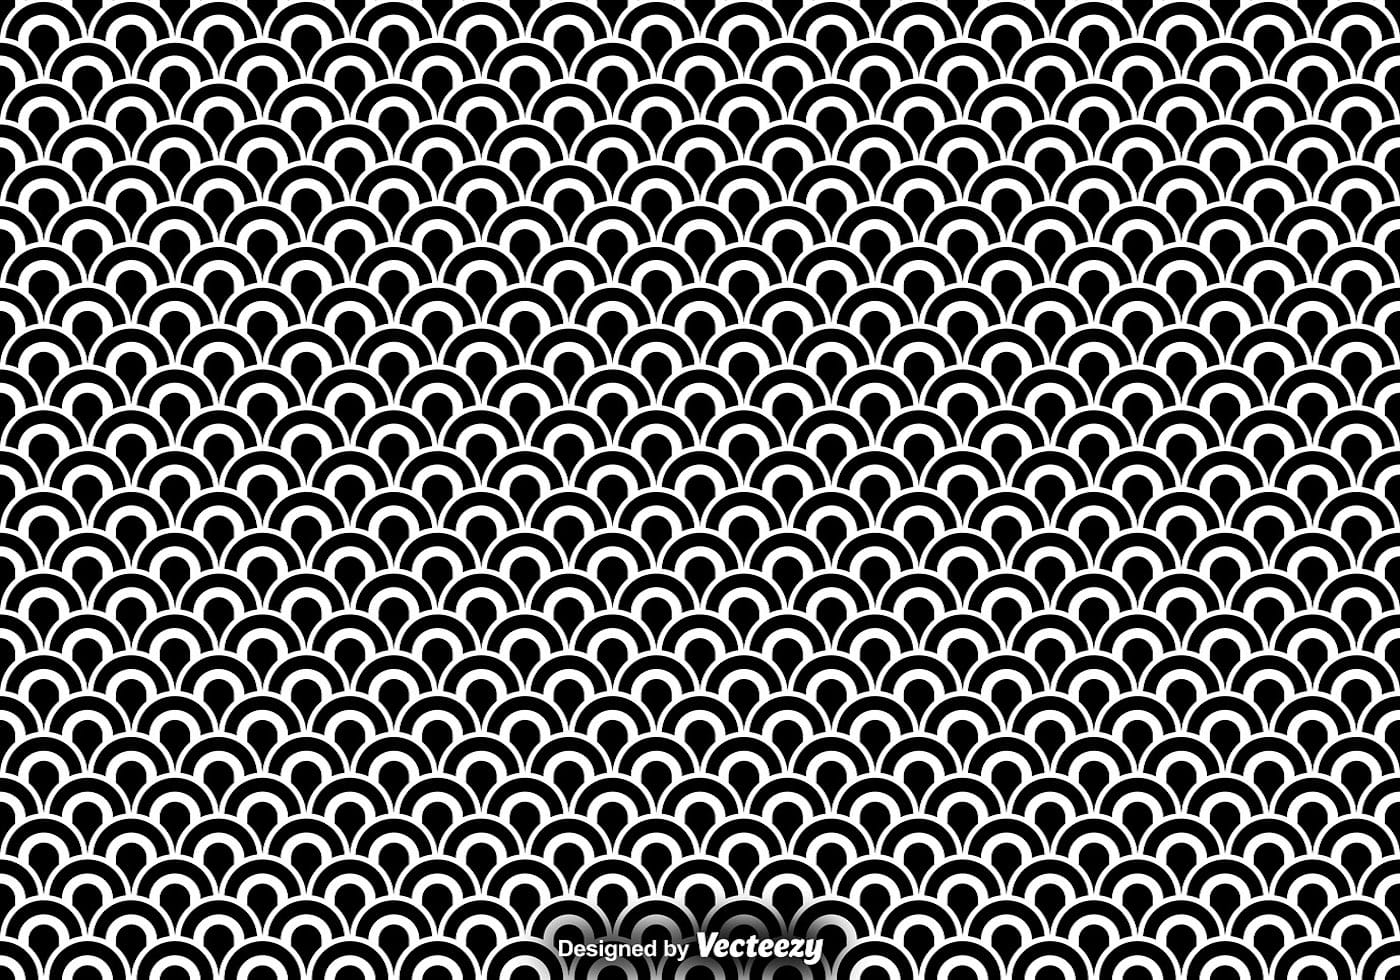 Vector Seamless Pattern Of Fish Scales Download Free